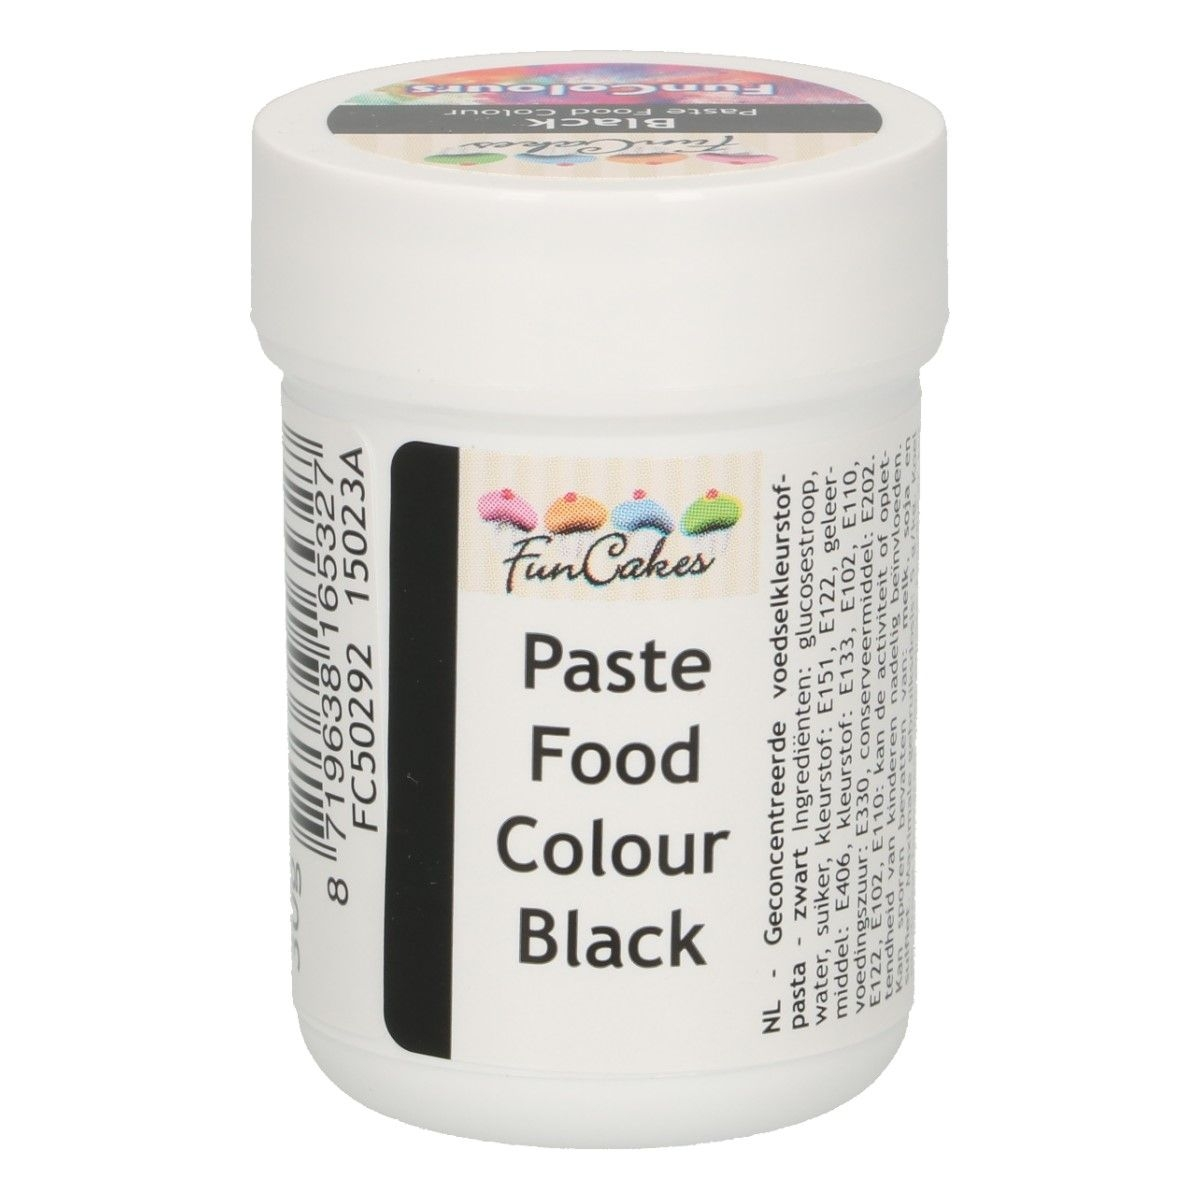 /f/u/funcakes_funcolours_paste_food_colour_-_black.jpg